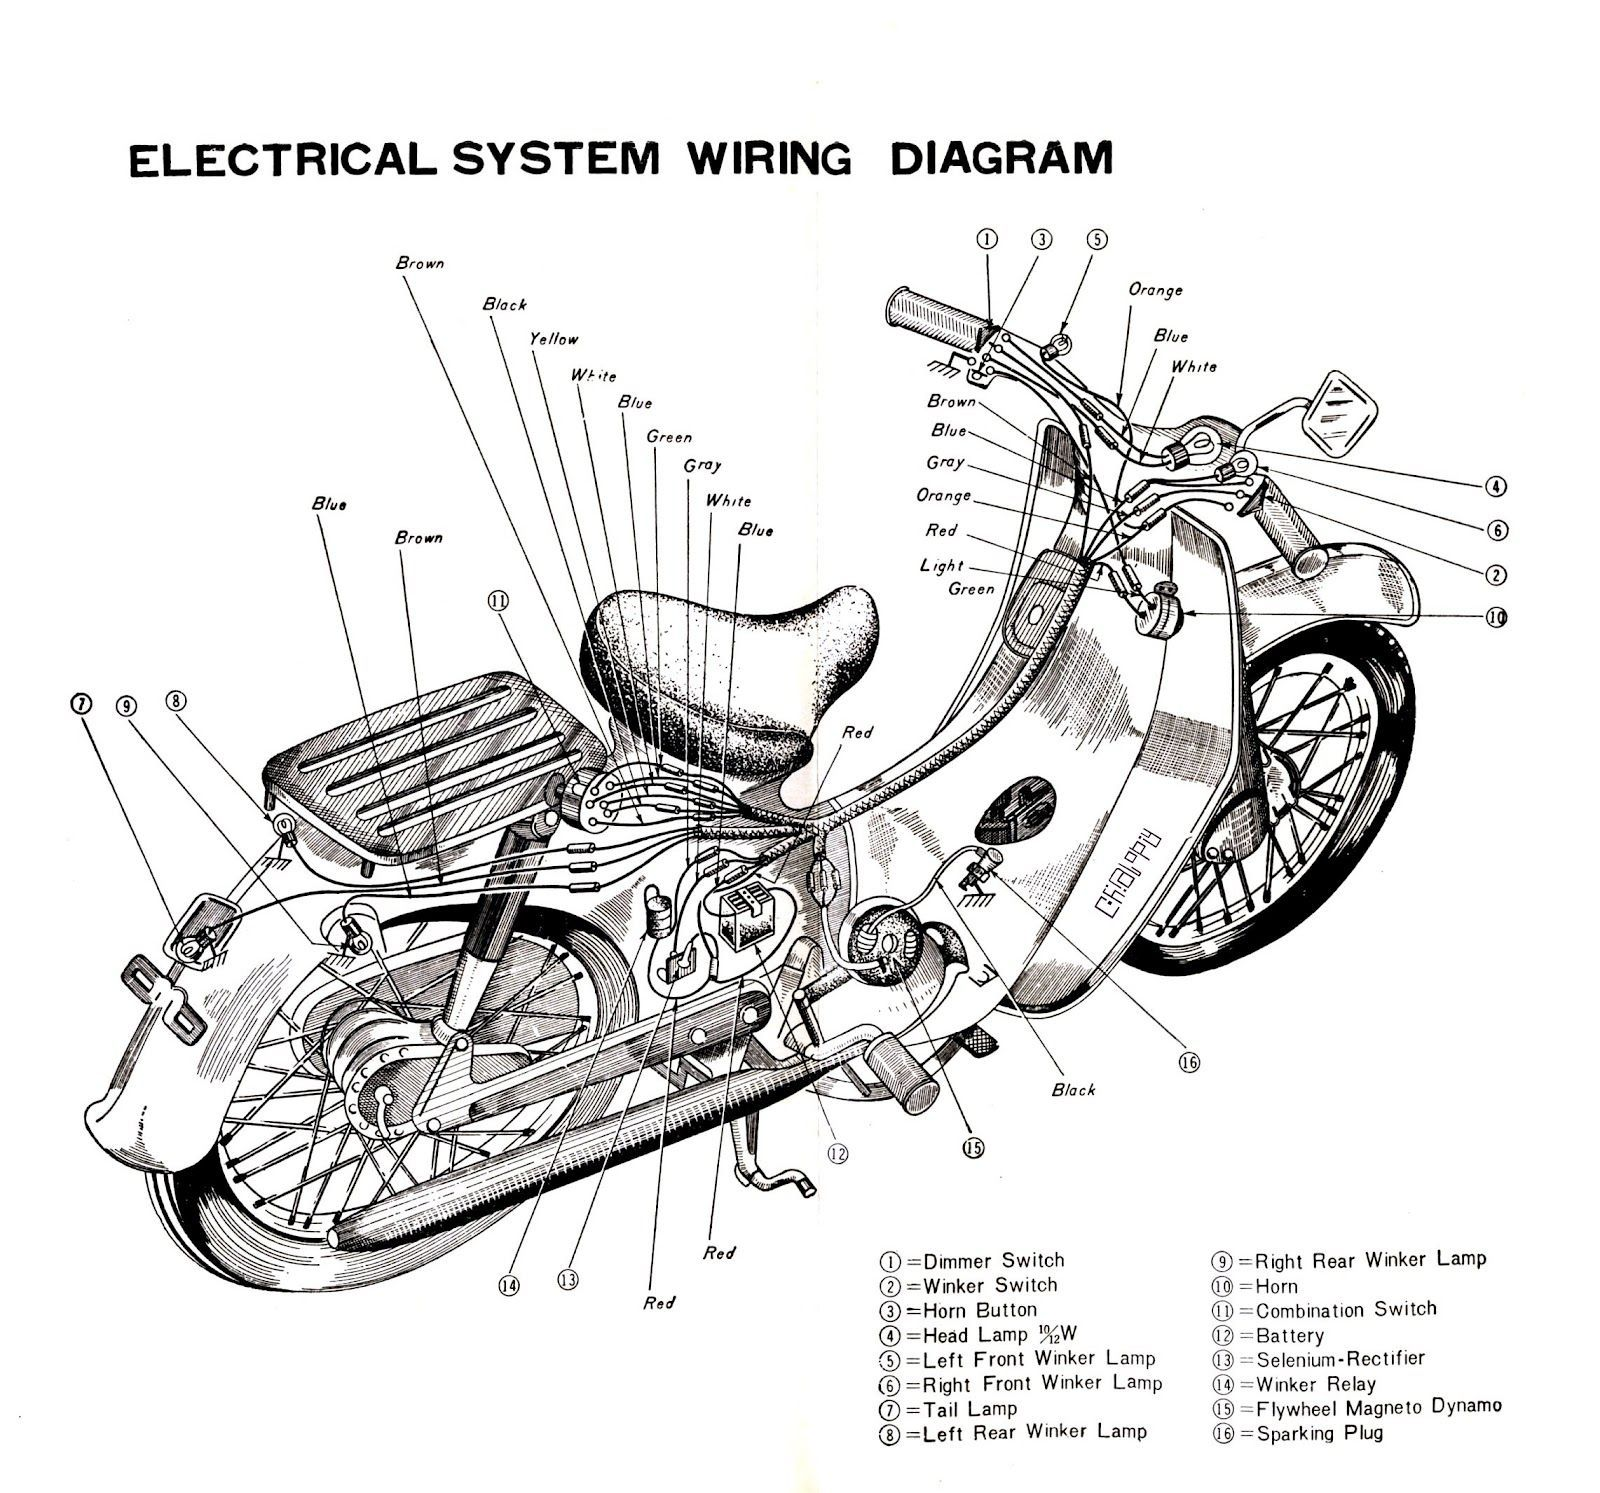 medium resolution of image result for electrical system wiring diagram honda c70 honda bycke diagram honda